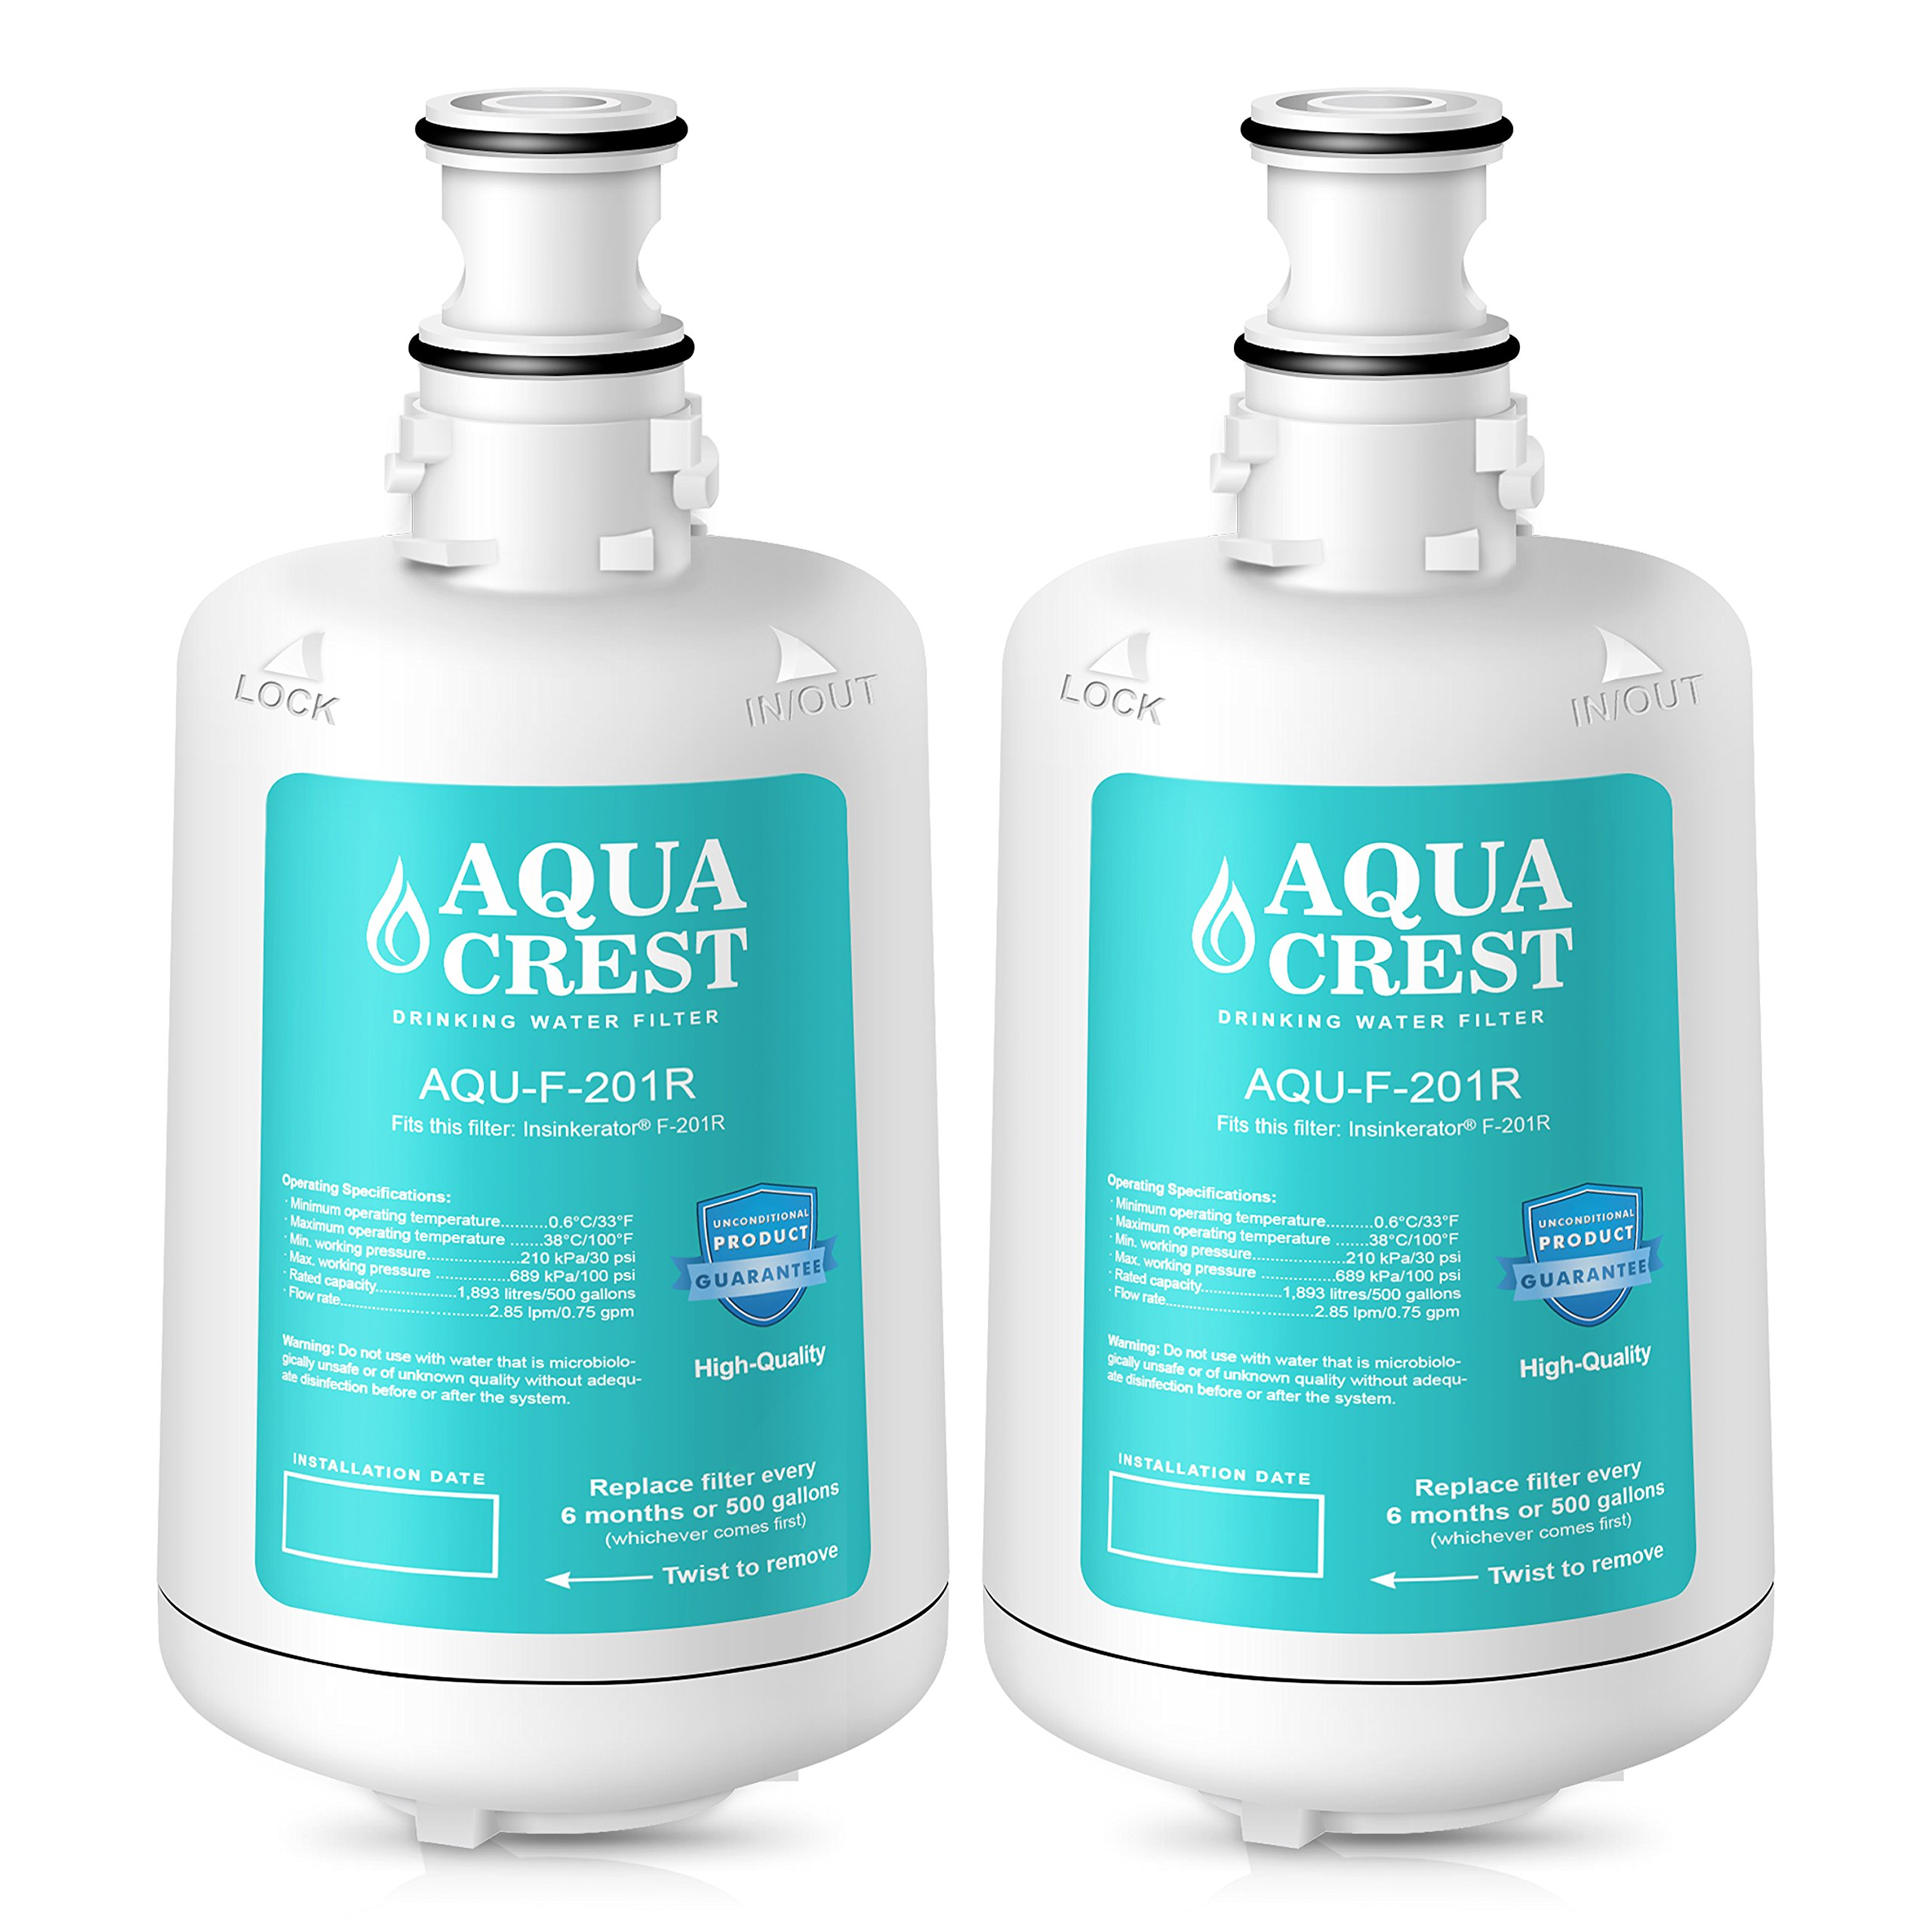 AQUACREST F-201R Replacement Under Sink Water Filter, Compatible with Insinkerator F-201R Filter Cartridge for Hot Water Dispenser (Pack of 2) by AQUA CREST